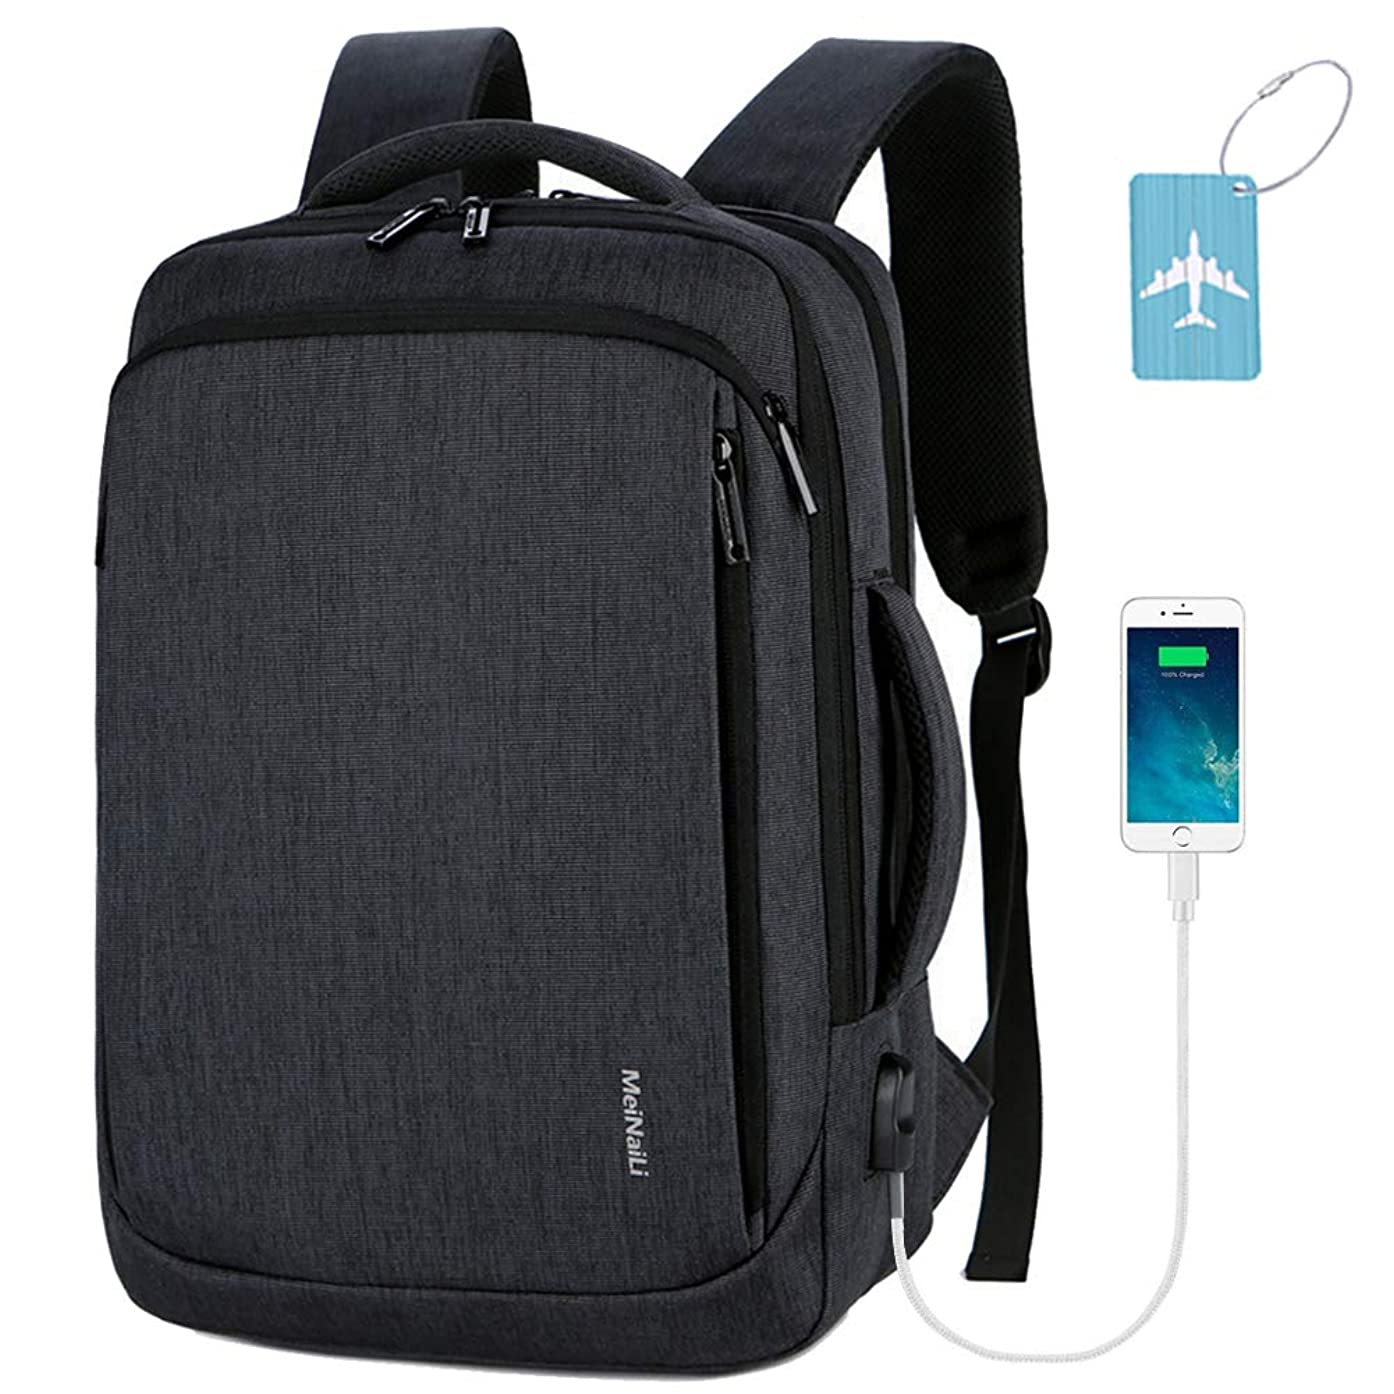 Business Travel Backpack,Laptop Backpack with USB Charging Port for Men Womens Boys Girls,Multifunction Water Resistant College School Bookbag Computer Bag Fits 15 15.6 inch Gray Black